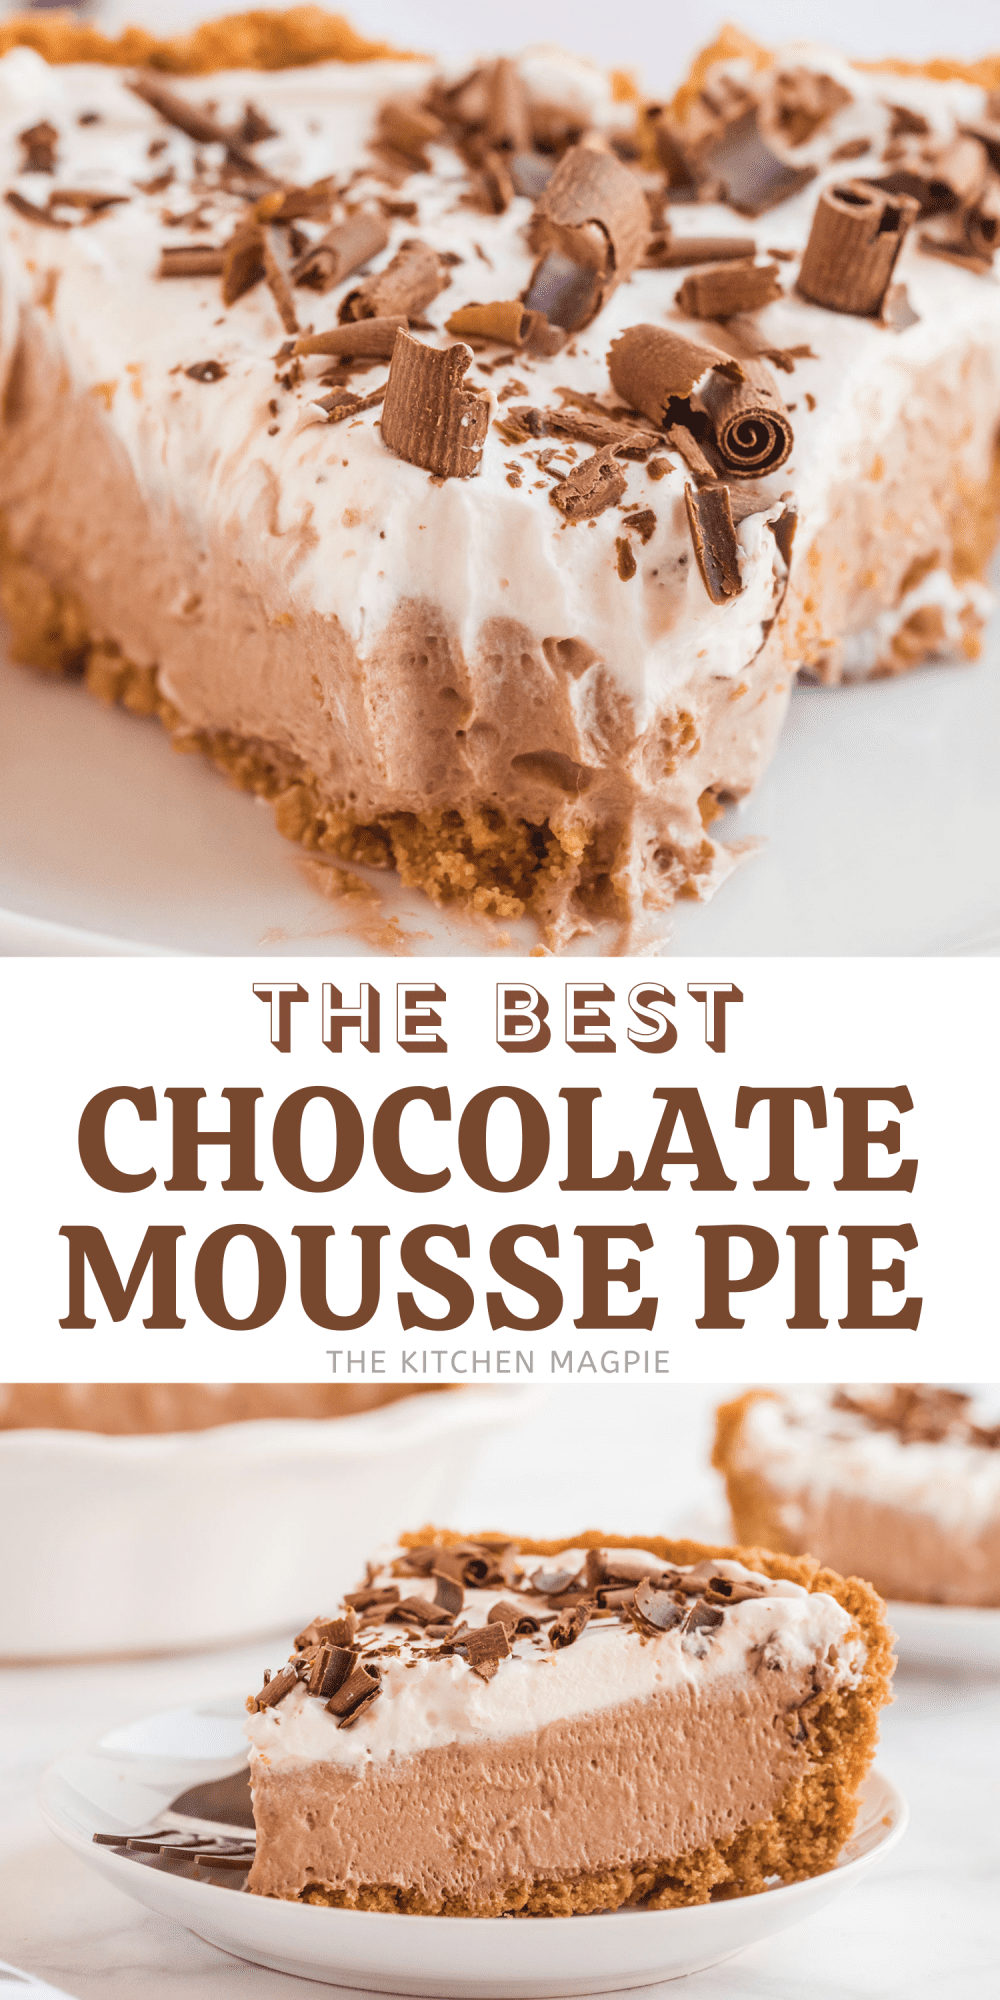 Rich, creamy and decadent chocolate mousse pie, made using any sweet chocolate that you have hanging around your house!